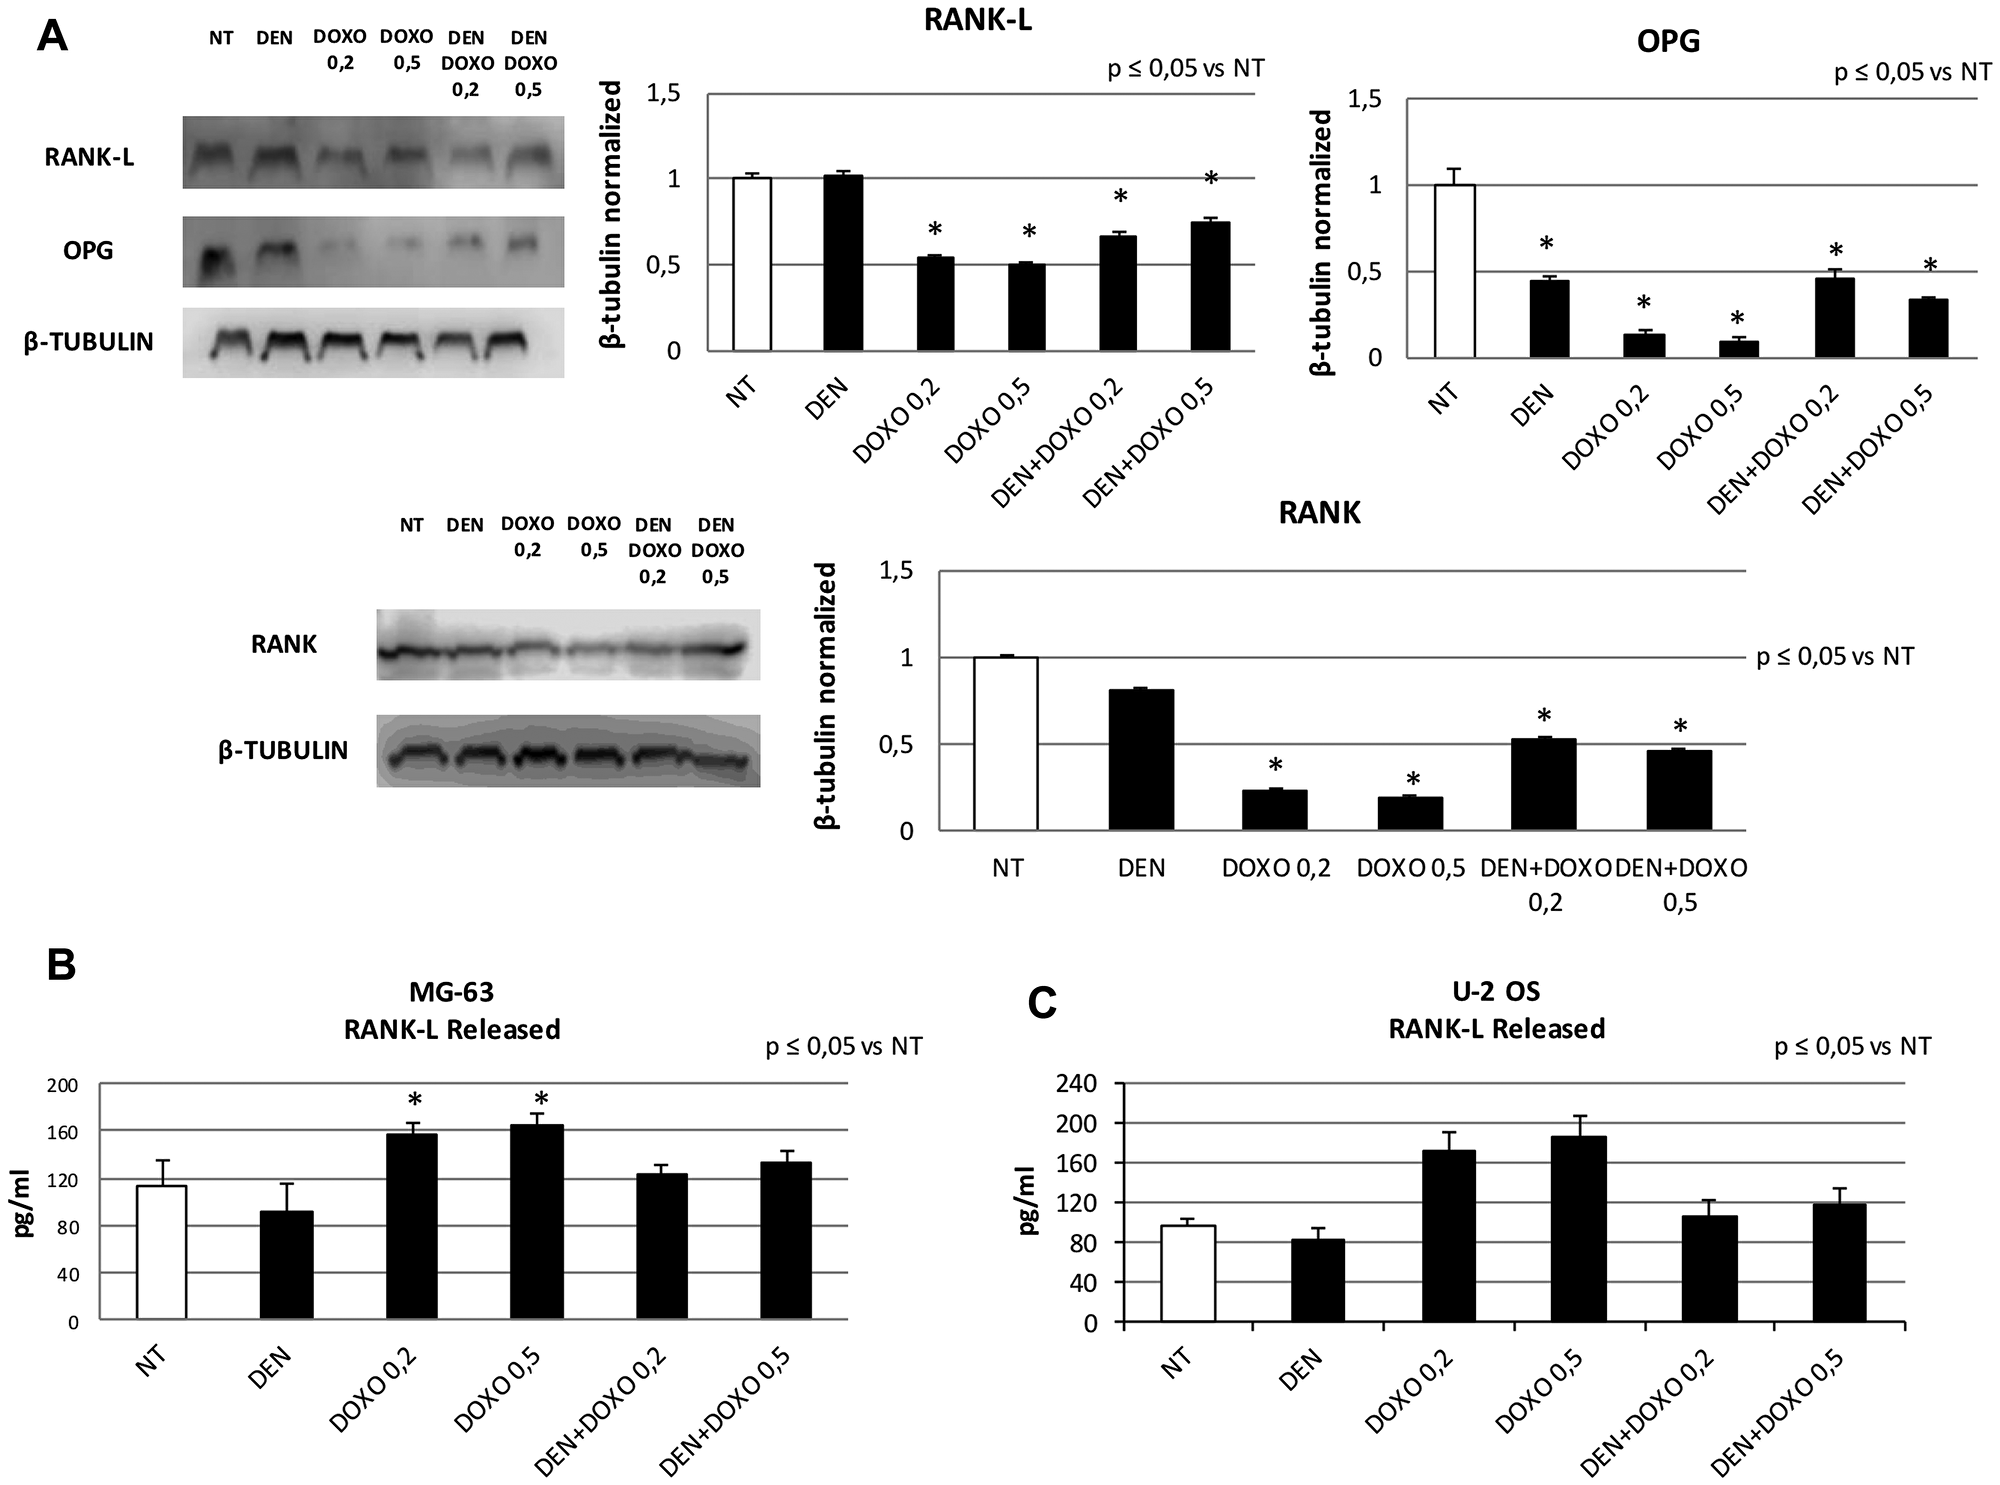 RANK, RANK-L and OPG protein expression levels and RANK-L released concentration after treatment with Den and Doxo in OS cell lines.